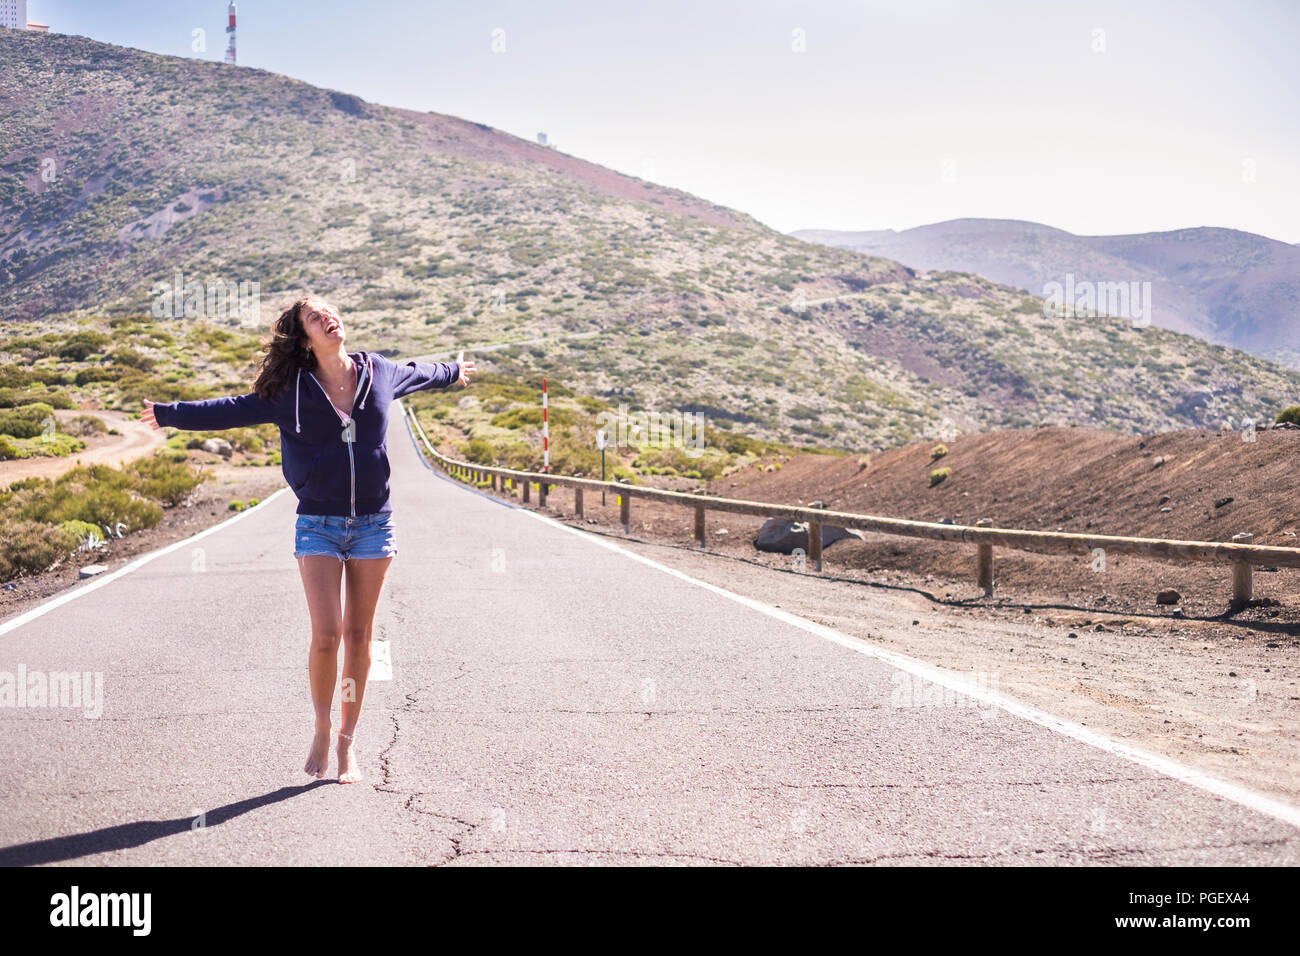 beautiful young woman walk barefoot over a long way road at the mountains. happiness and joyful concept for caucasian model with nice legs and shorts. - Stock Image